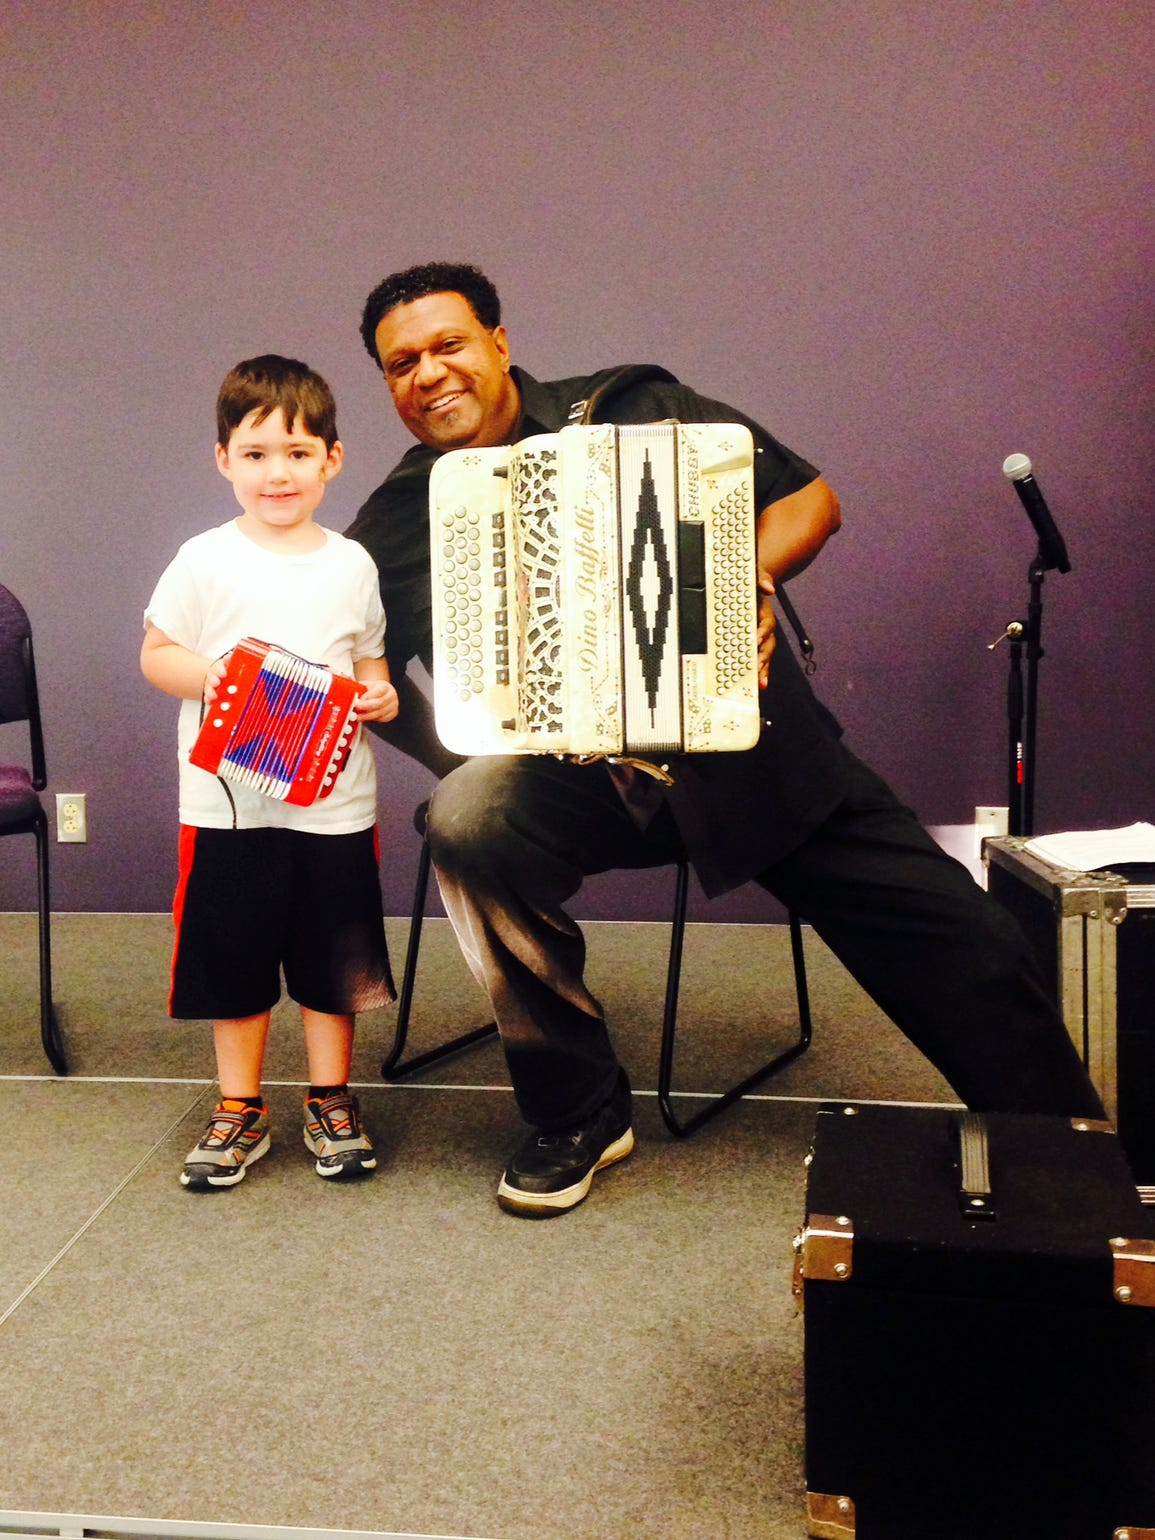 Dylan and Chubby Carrier pose with their accordions